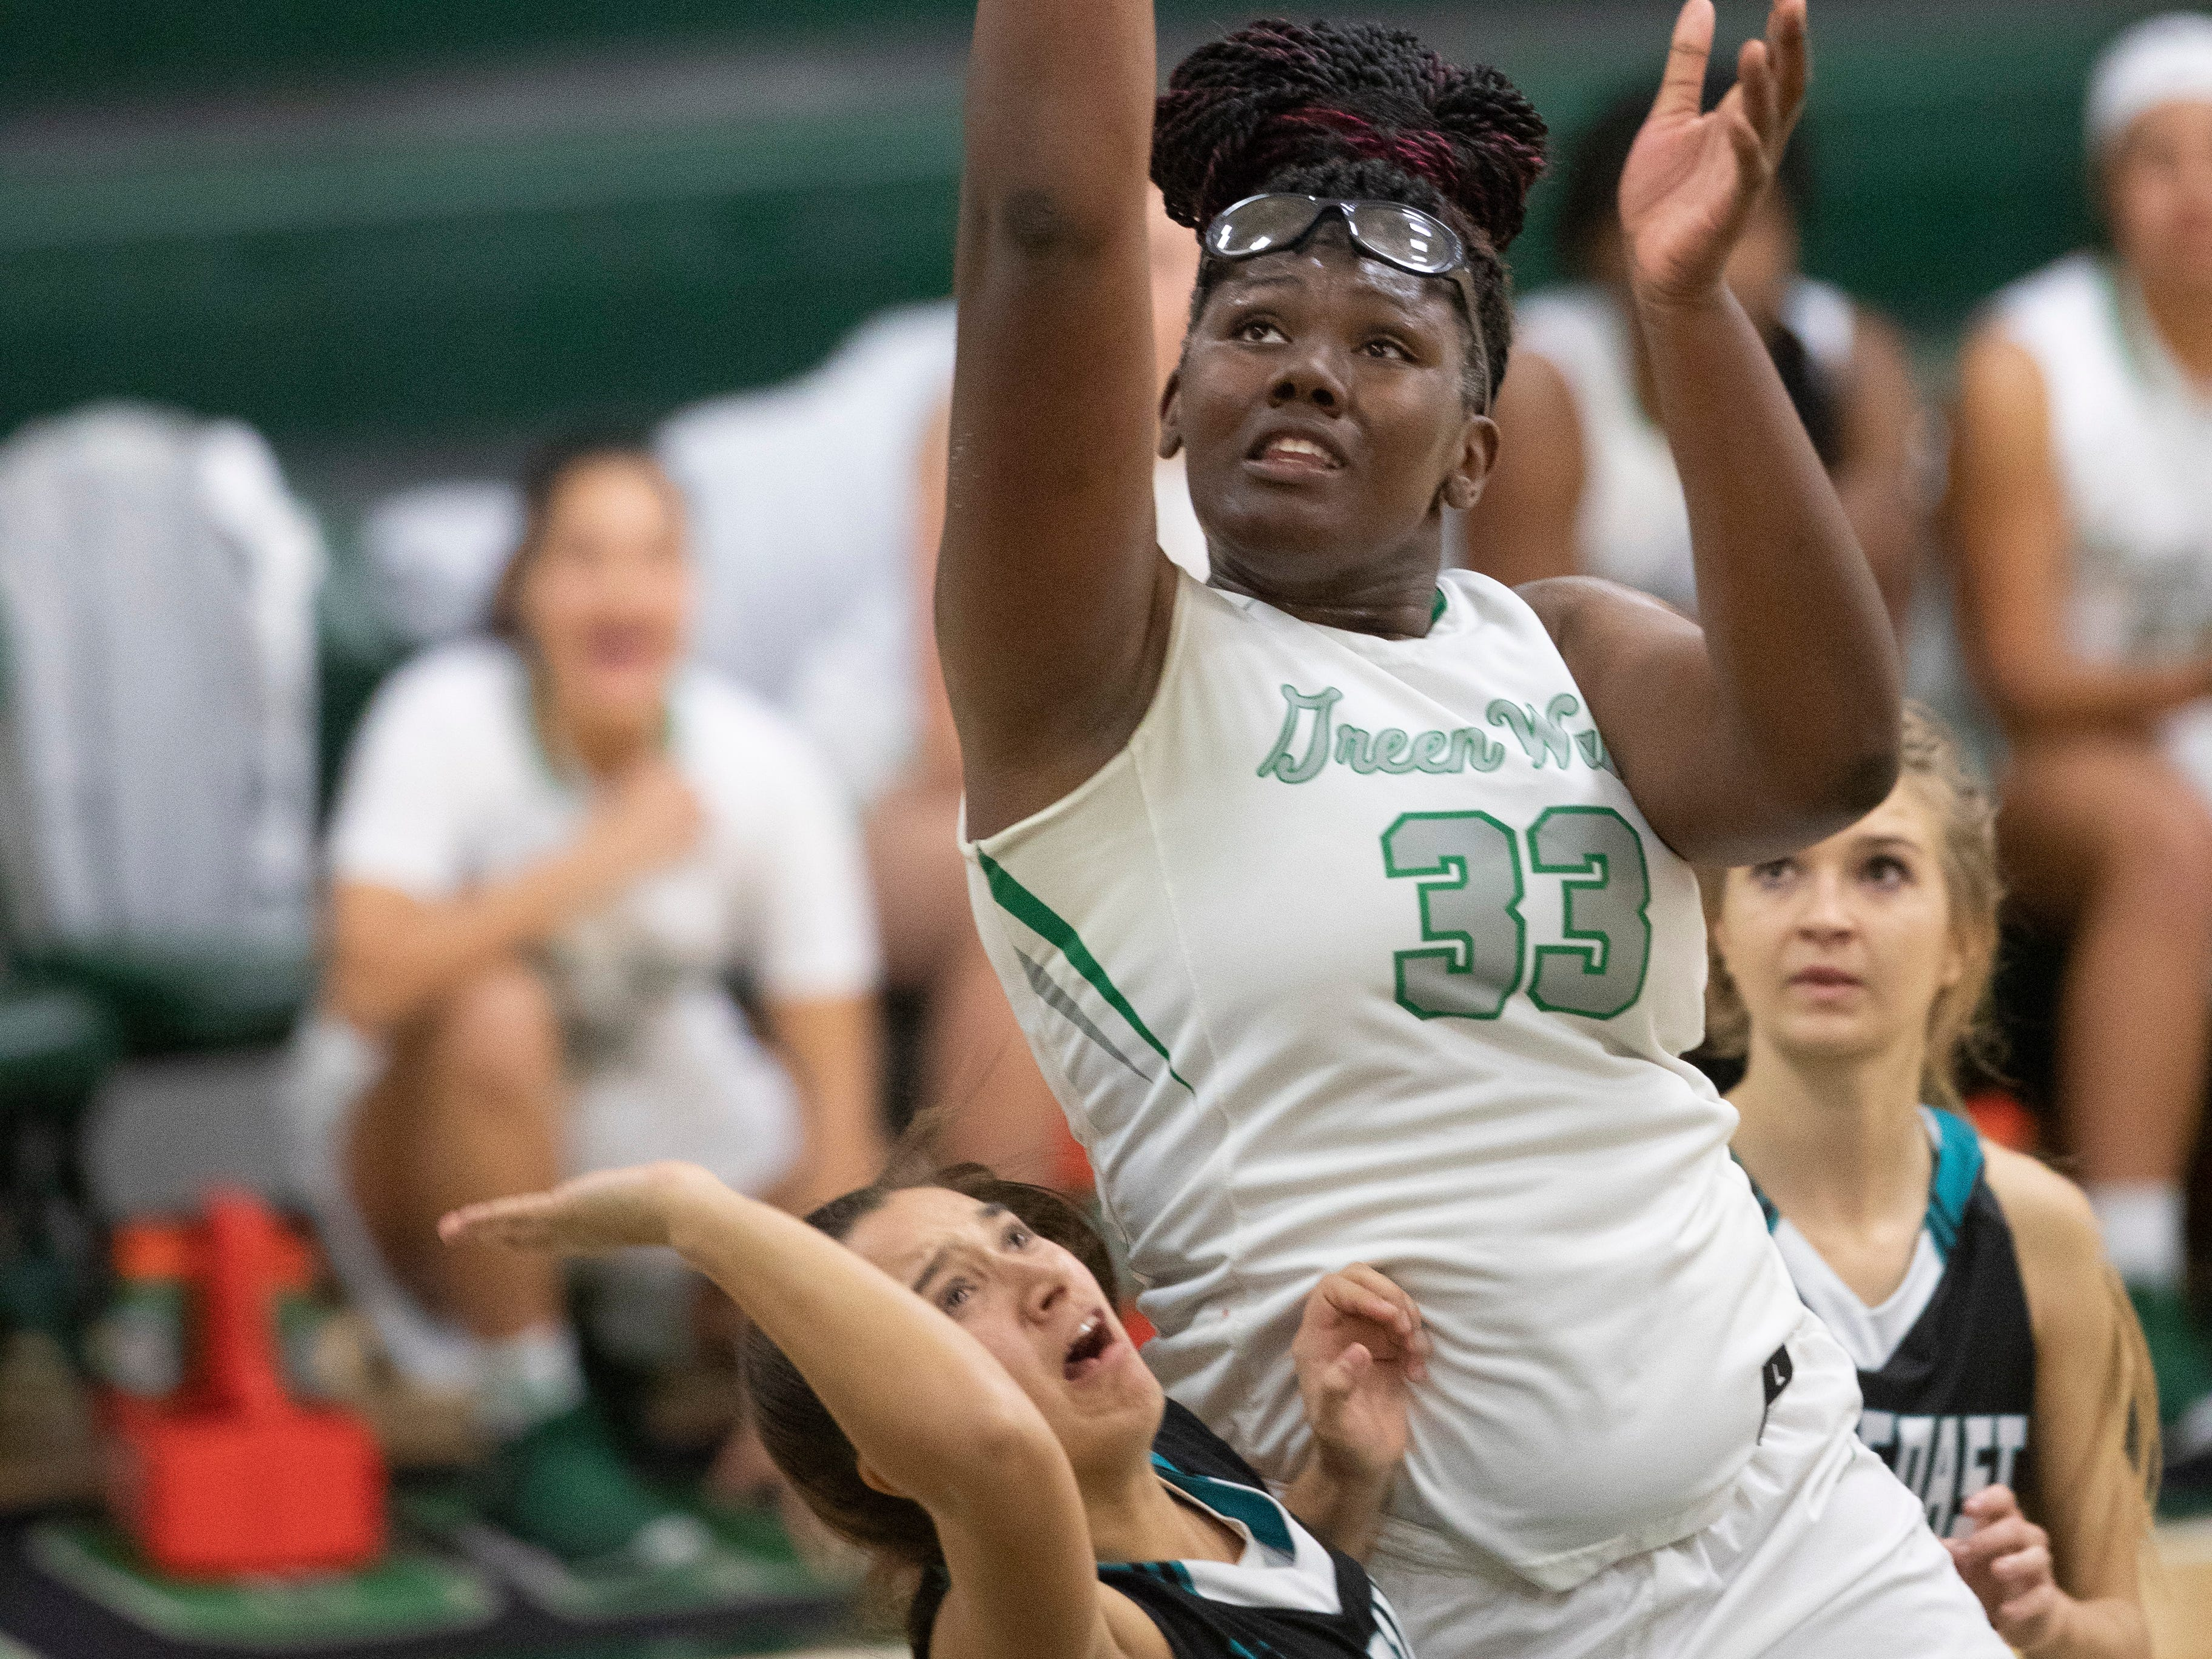 Fort Myers High School's Chaniya Clark scores against Gulf Coast on Thursday in Fort Myers. Gulf Coast beat Fort Myers 71-67.